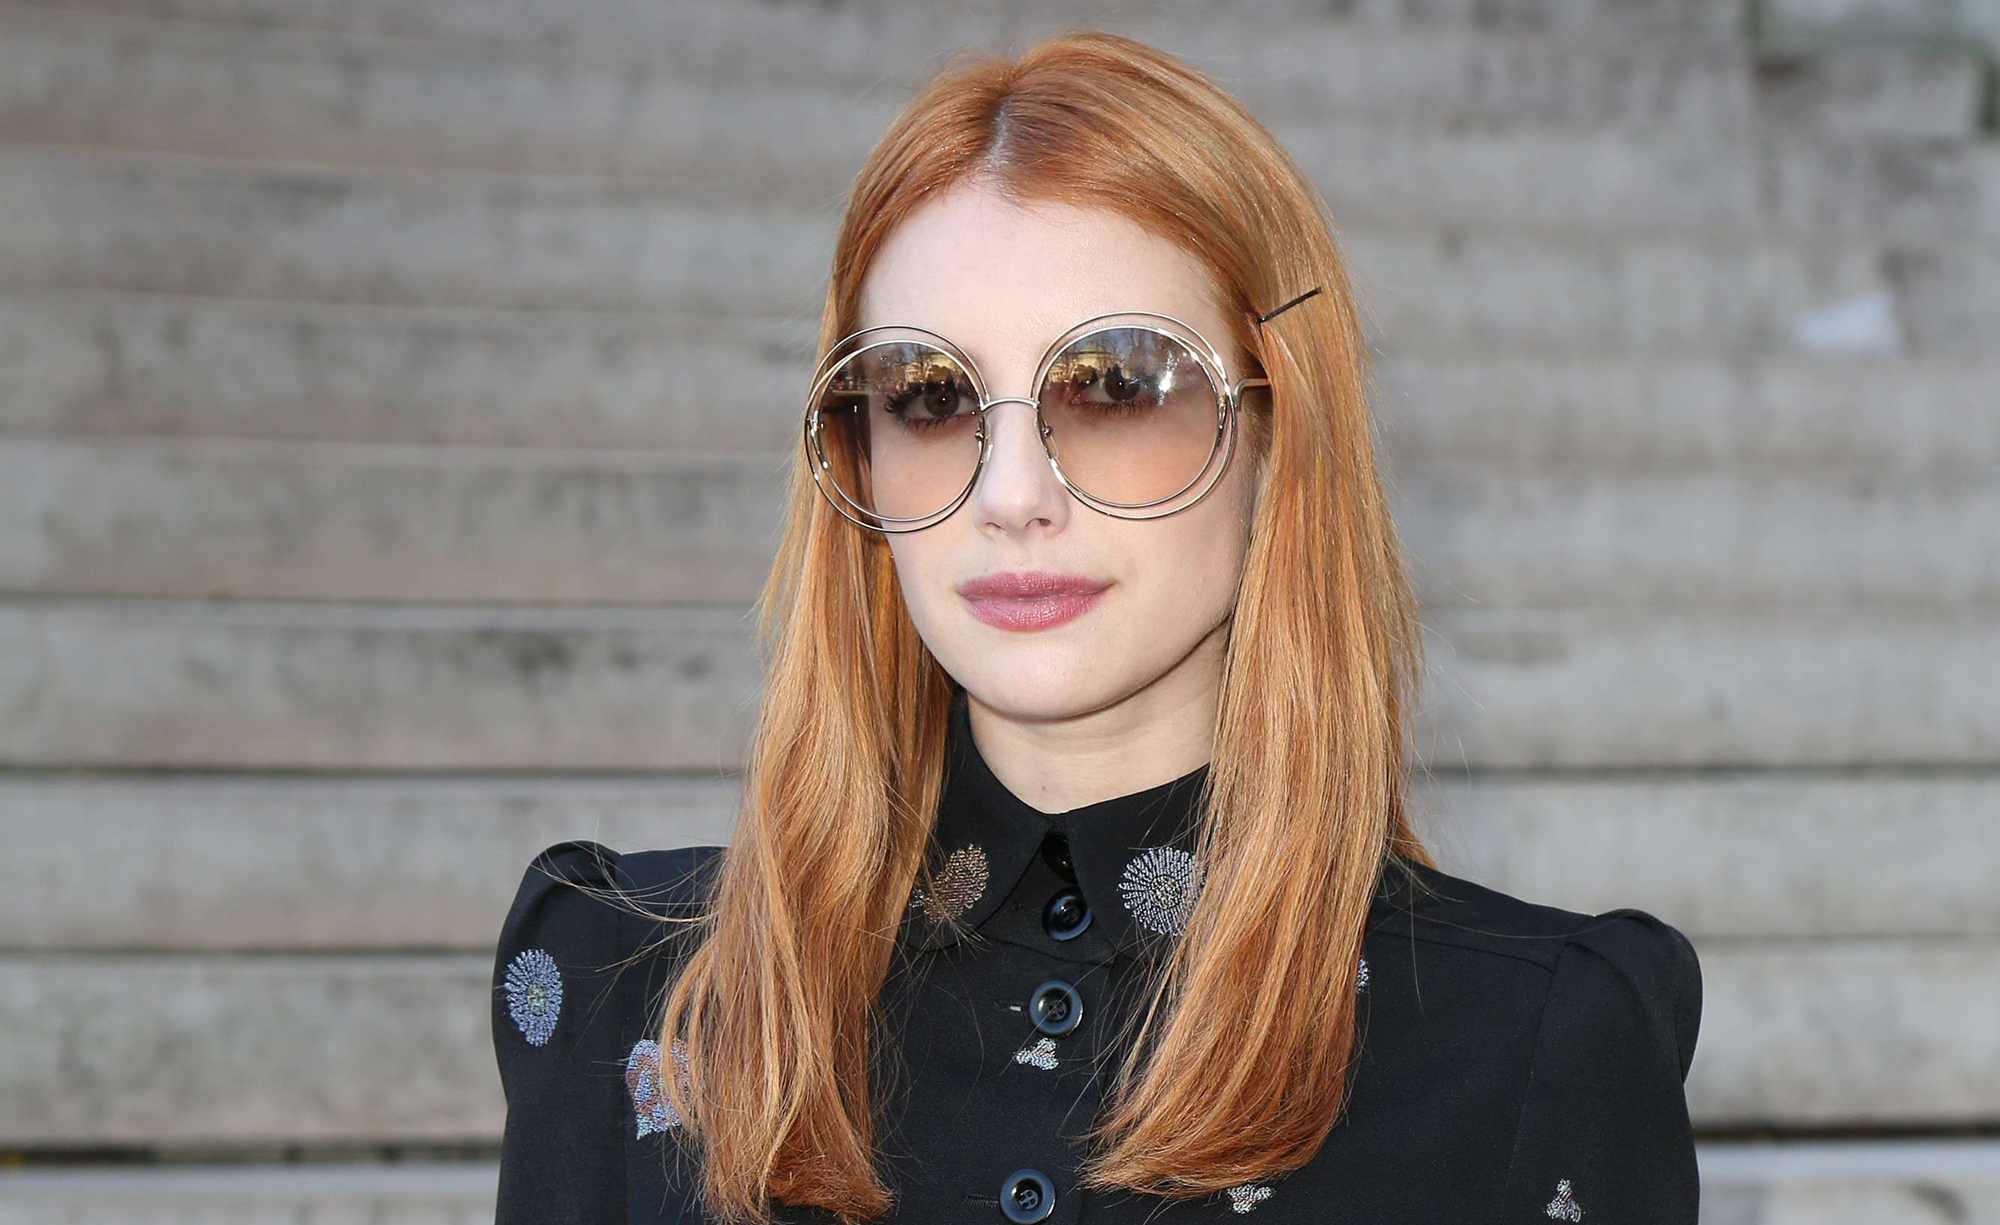 blorange hair: what does it mean and what does it look like?